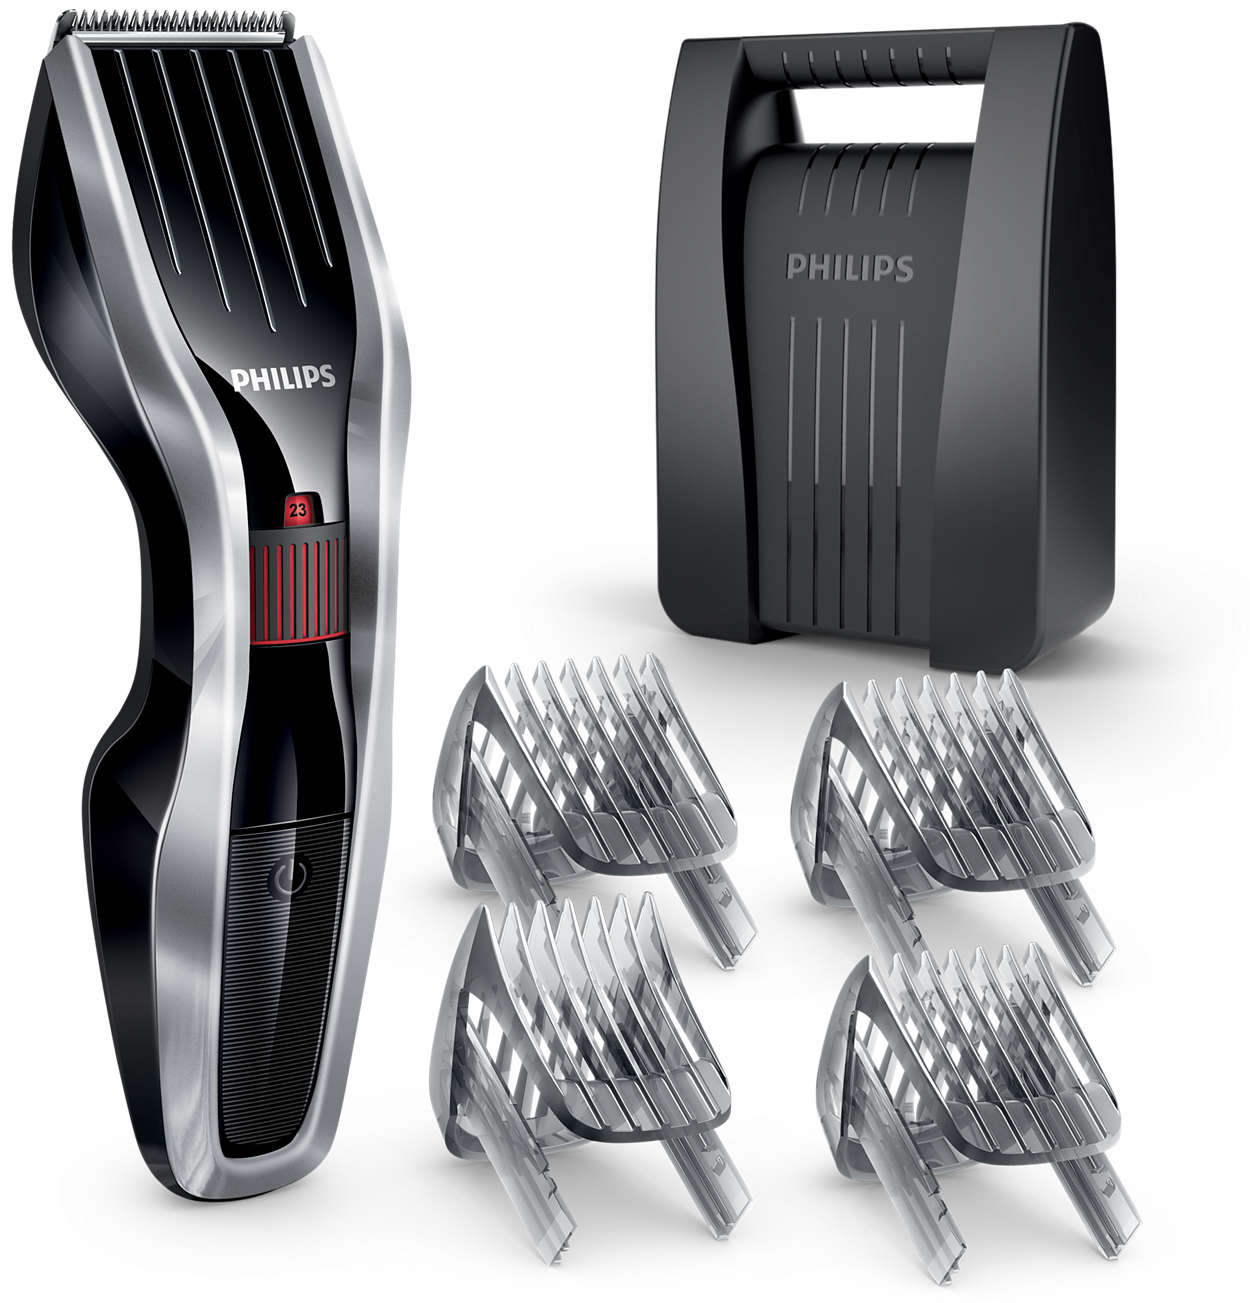 HAIRCLIPPER Series 5000 - Cuts twice as fast*